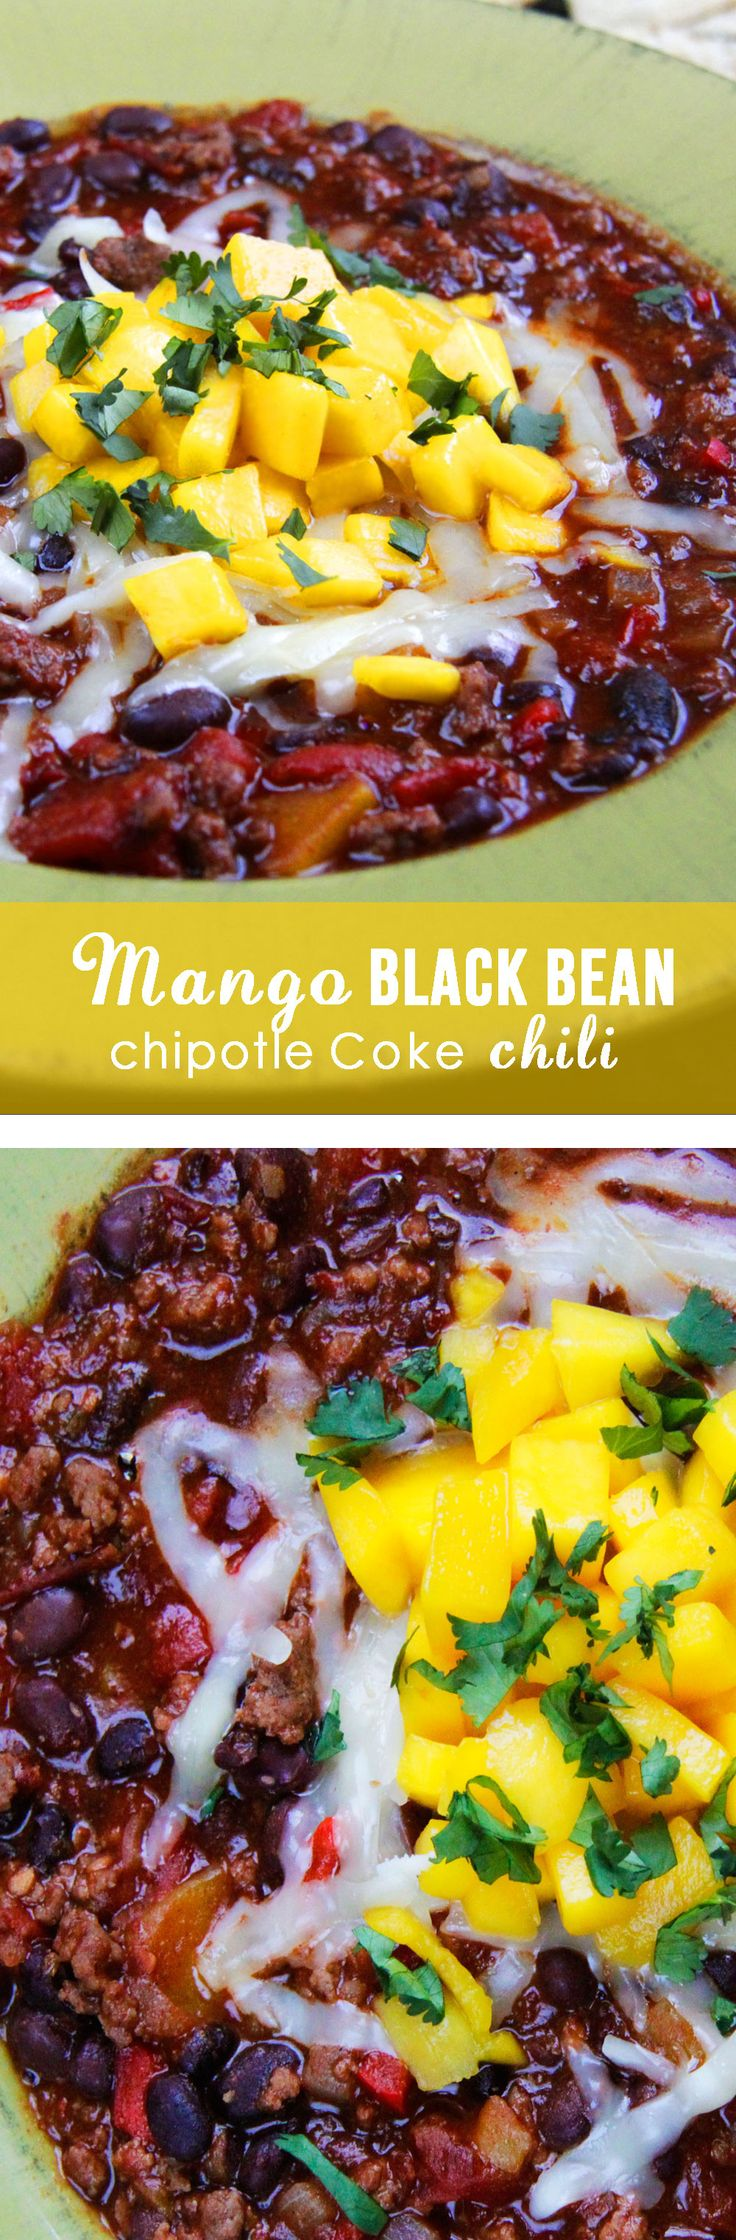 MY FAVORITE CHILI EVER!  and SO EASY!  smoky, sweet and spicy - everything a chili should be and more  - simmered with coke and mangos! | Carlsbad Cravings